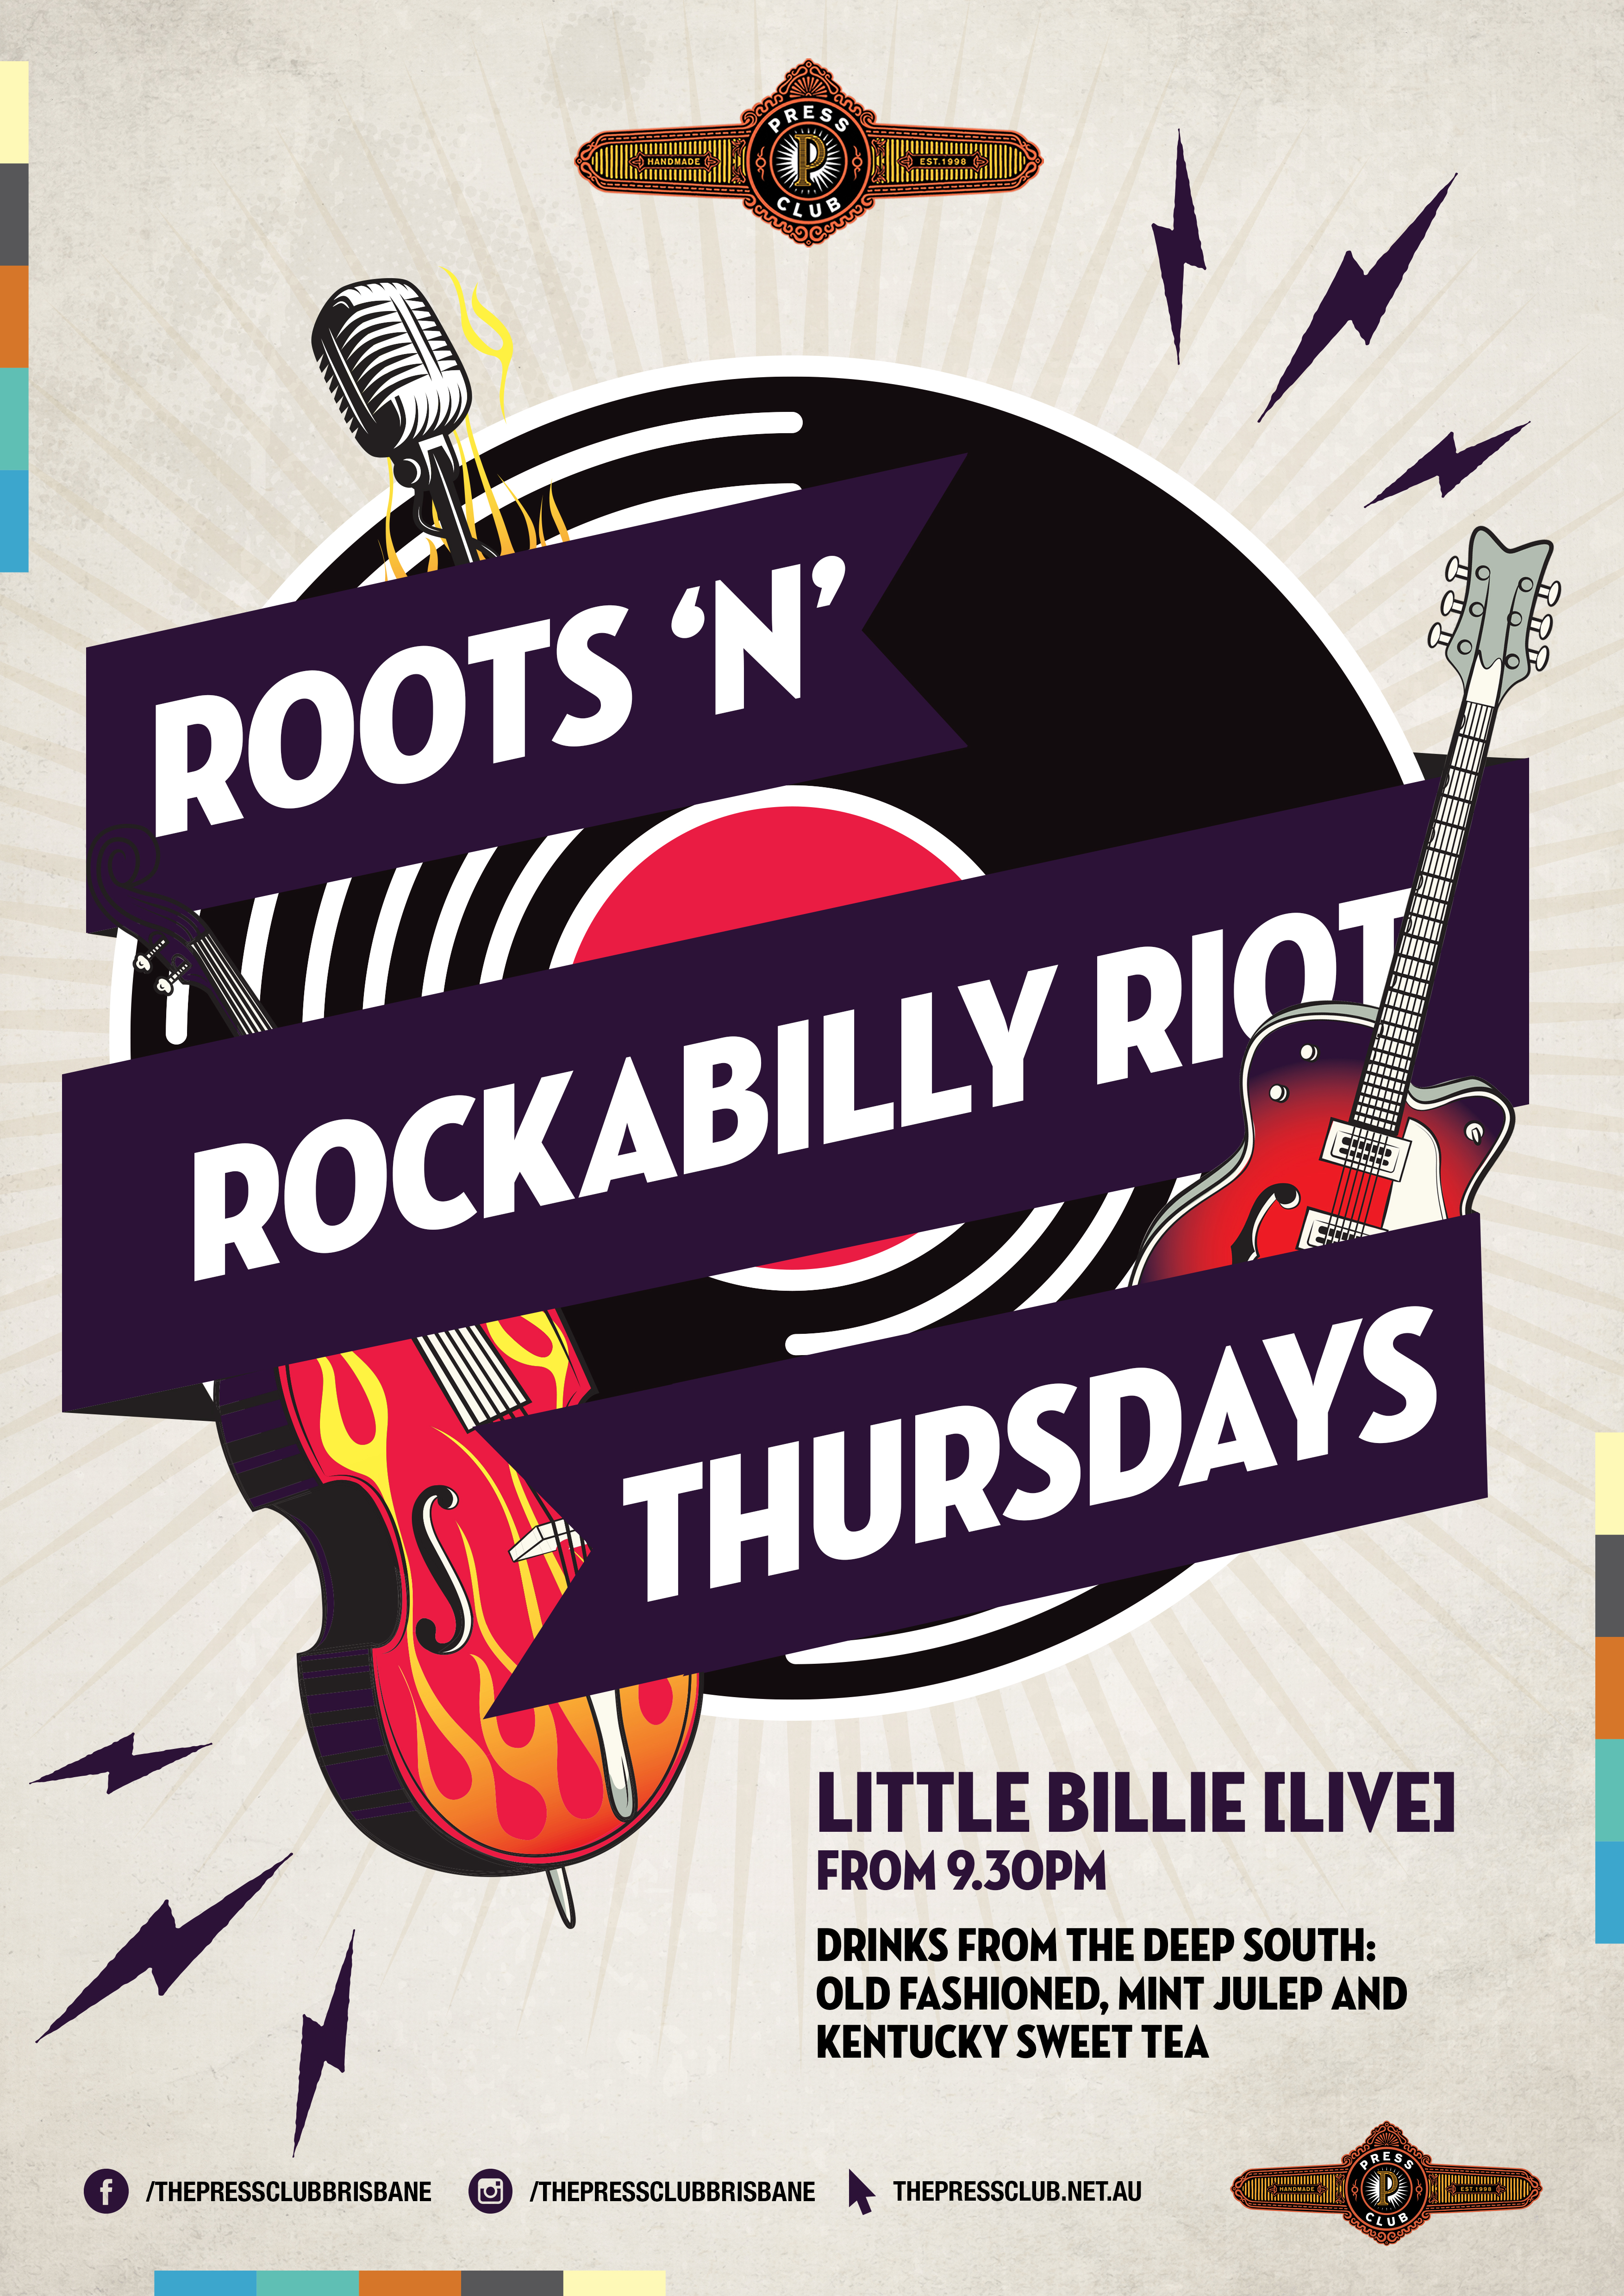 Roots n Rockabilly Riot Thursdays